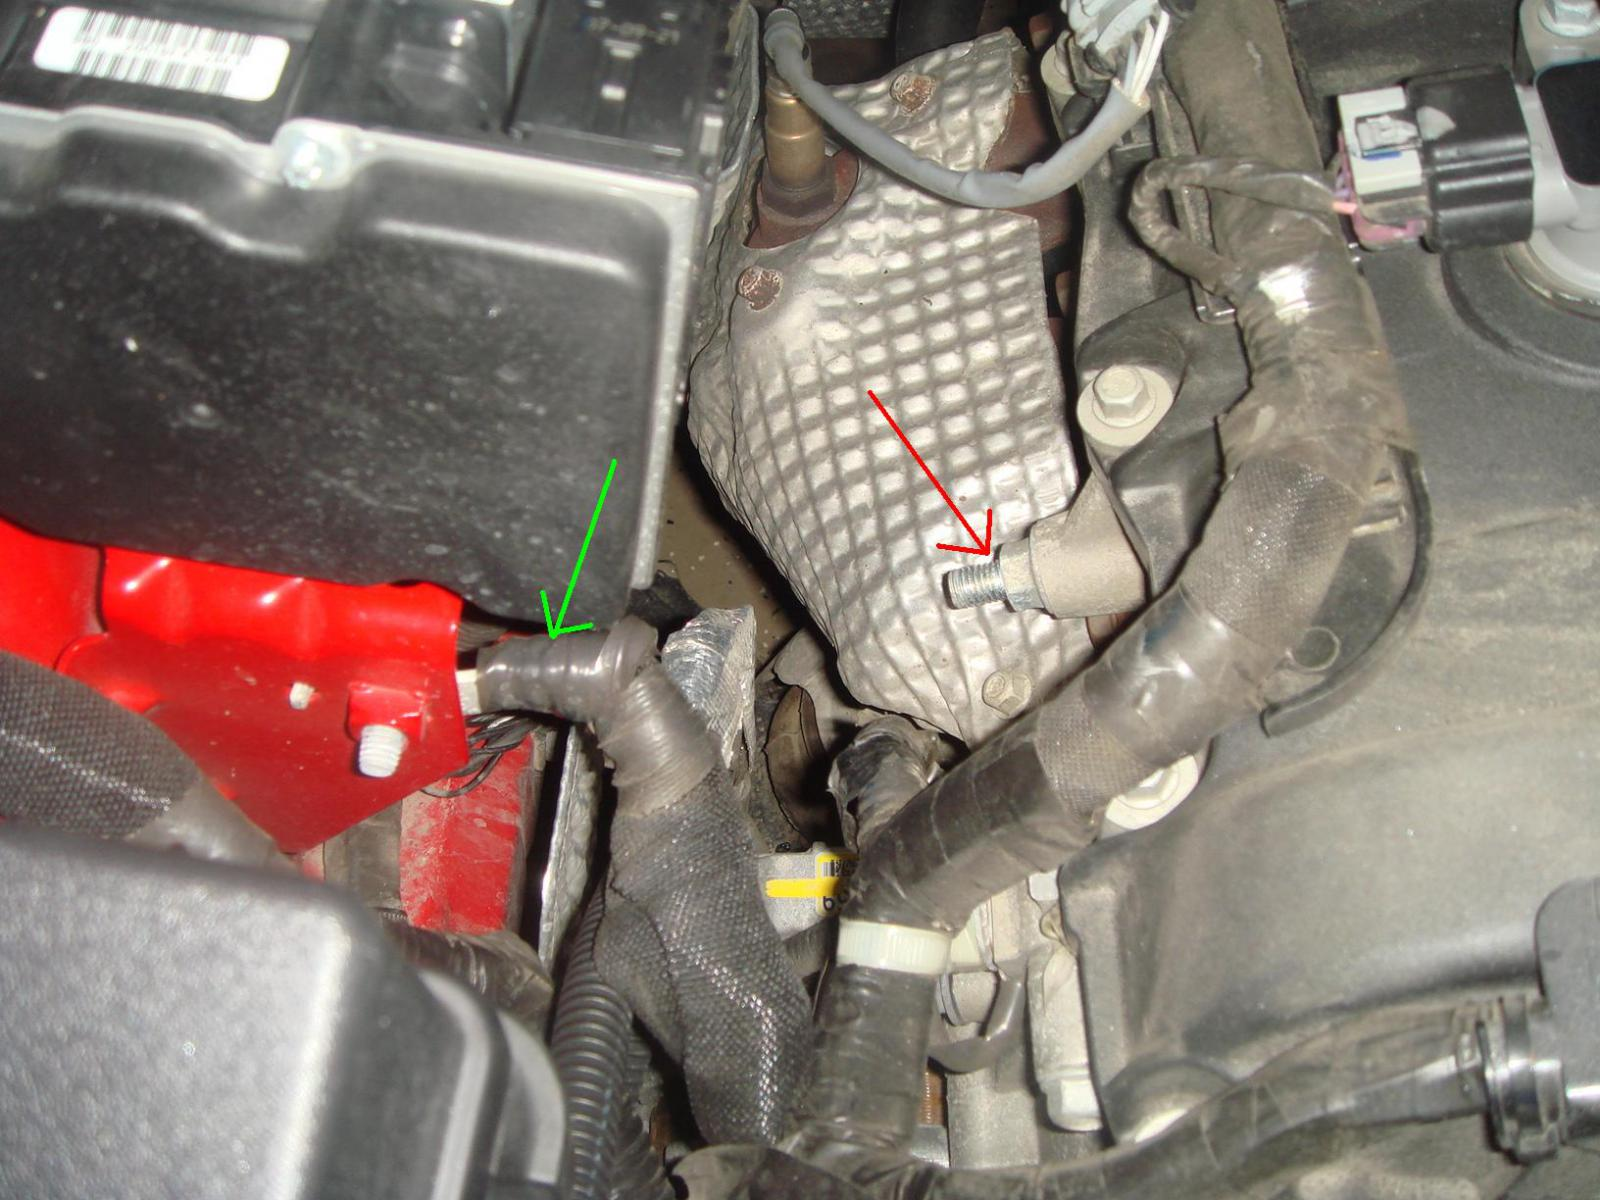 The arrow in red shows the engine ground stud located on the passenger side  under the engine cover. The green arrow shows how it is grounded to the  body of ...